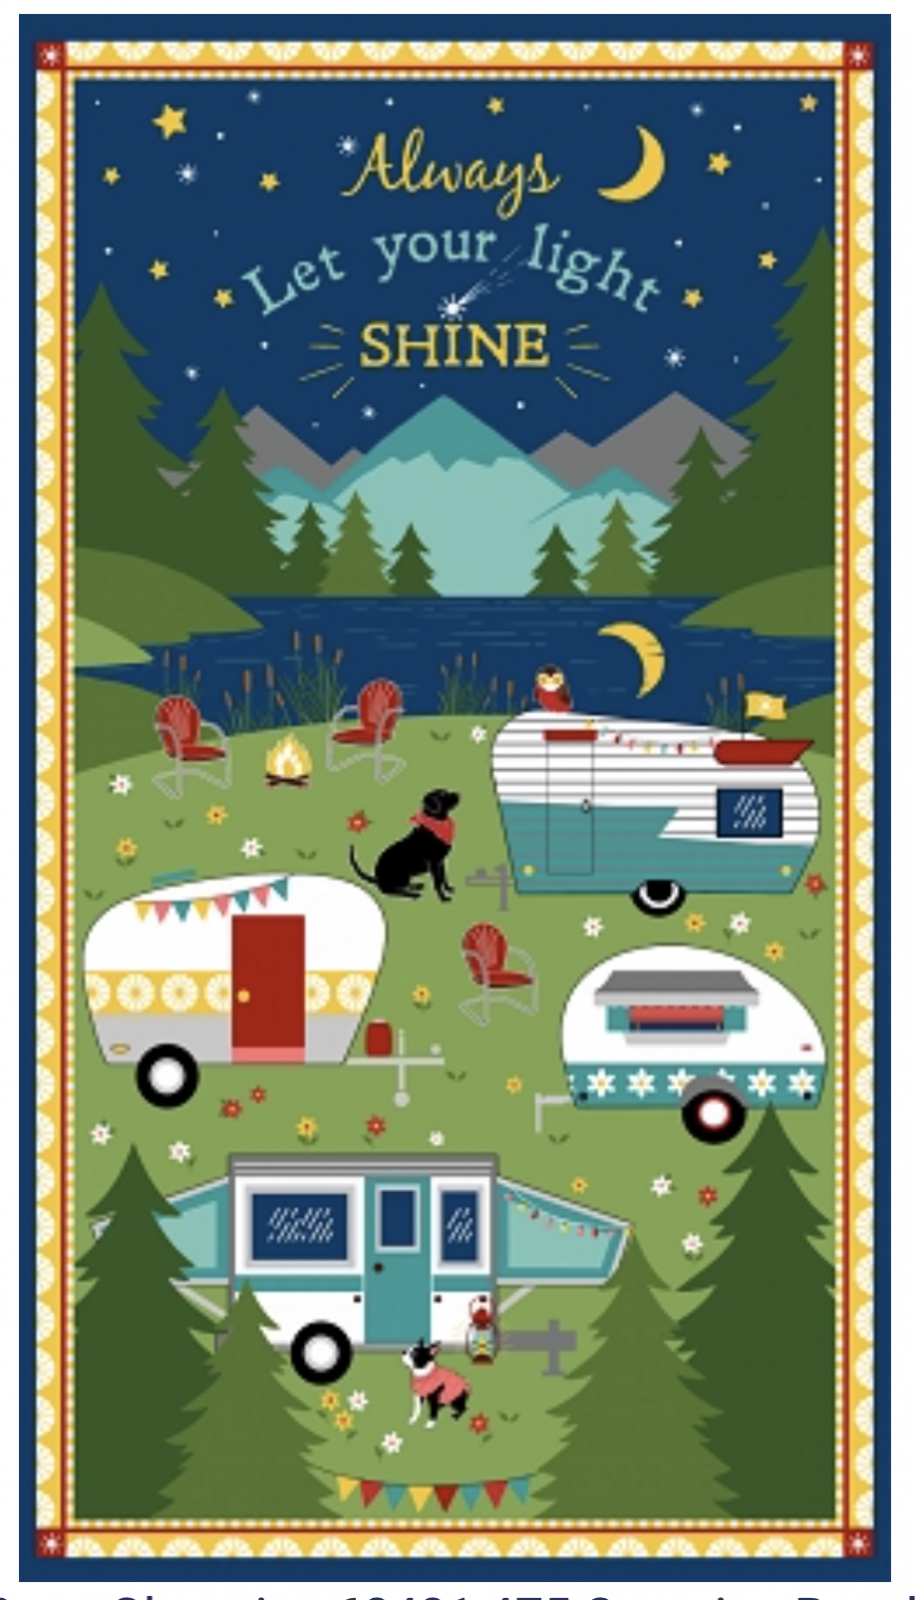 Let Your Light Shine Panel - Gone Glamping - 3007-68481-475